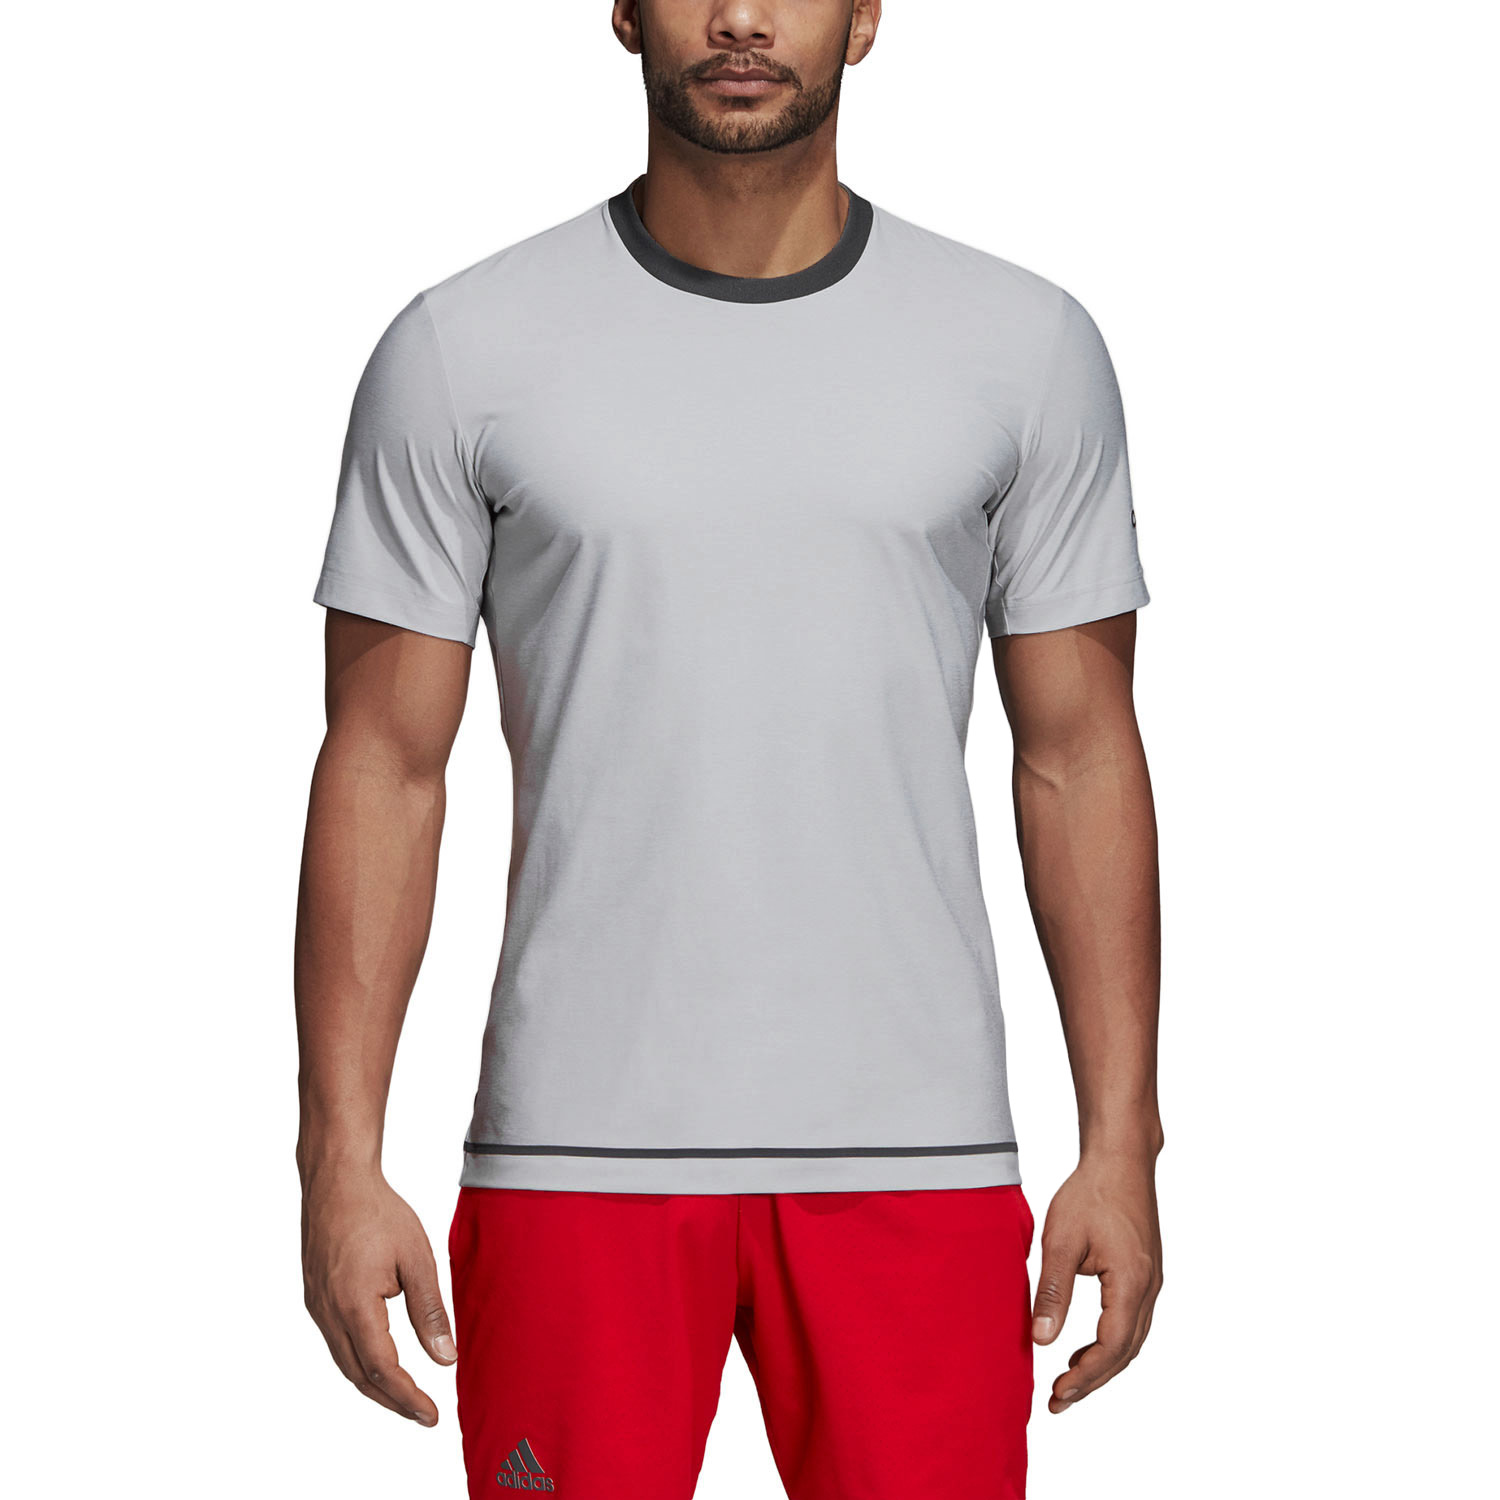 Tenis Camiseta Adidas Hombre Grey Light Barricade 4ALj5R3